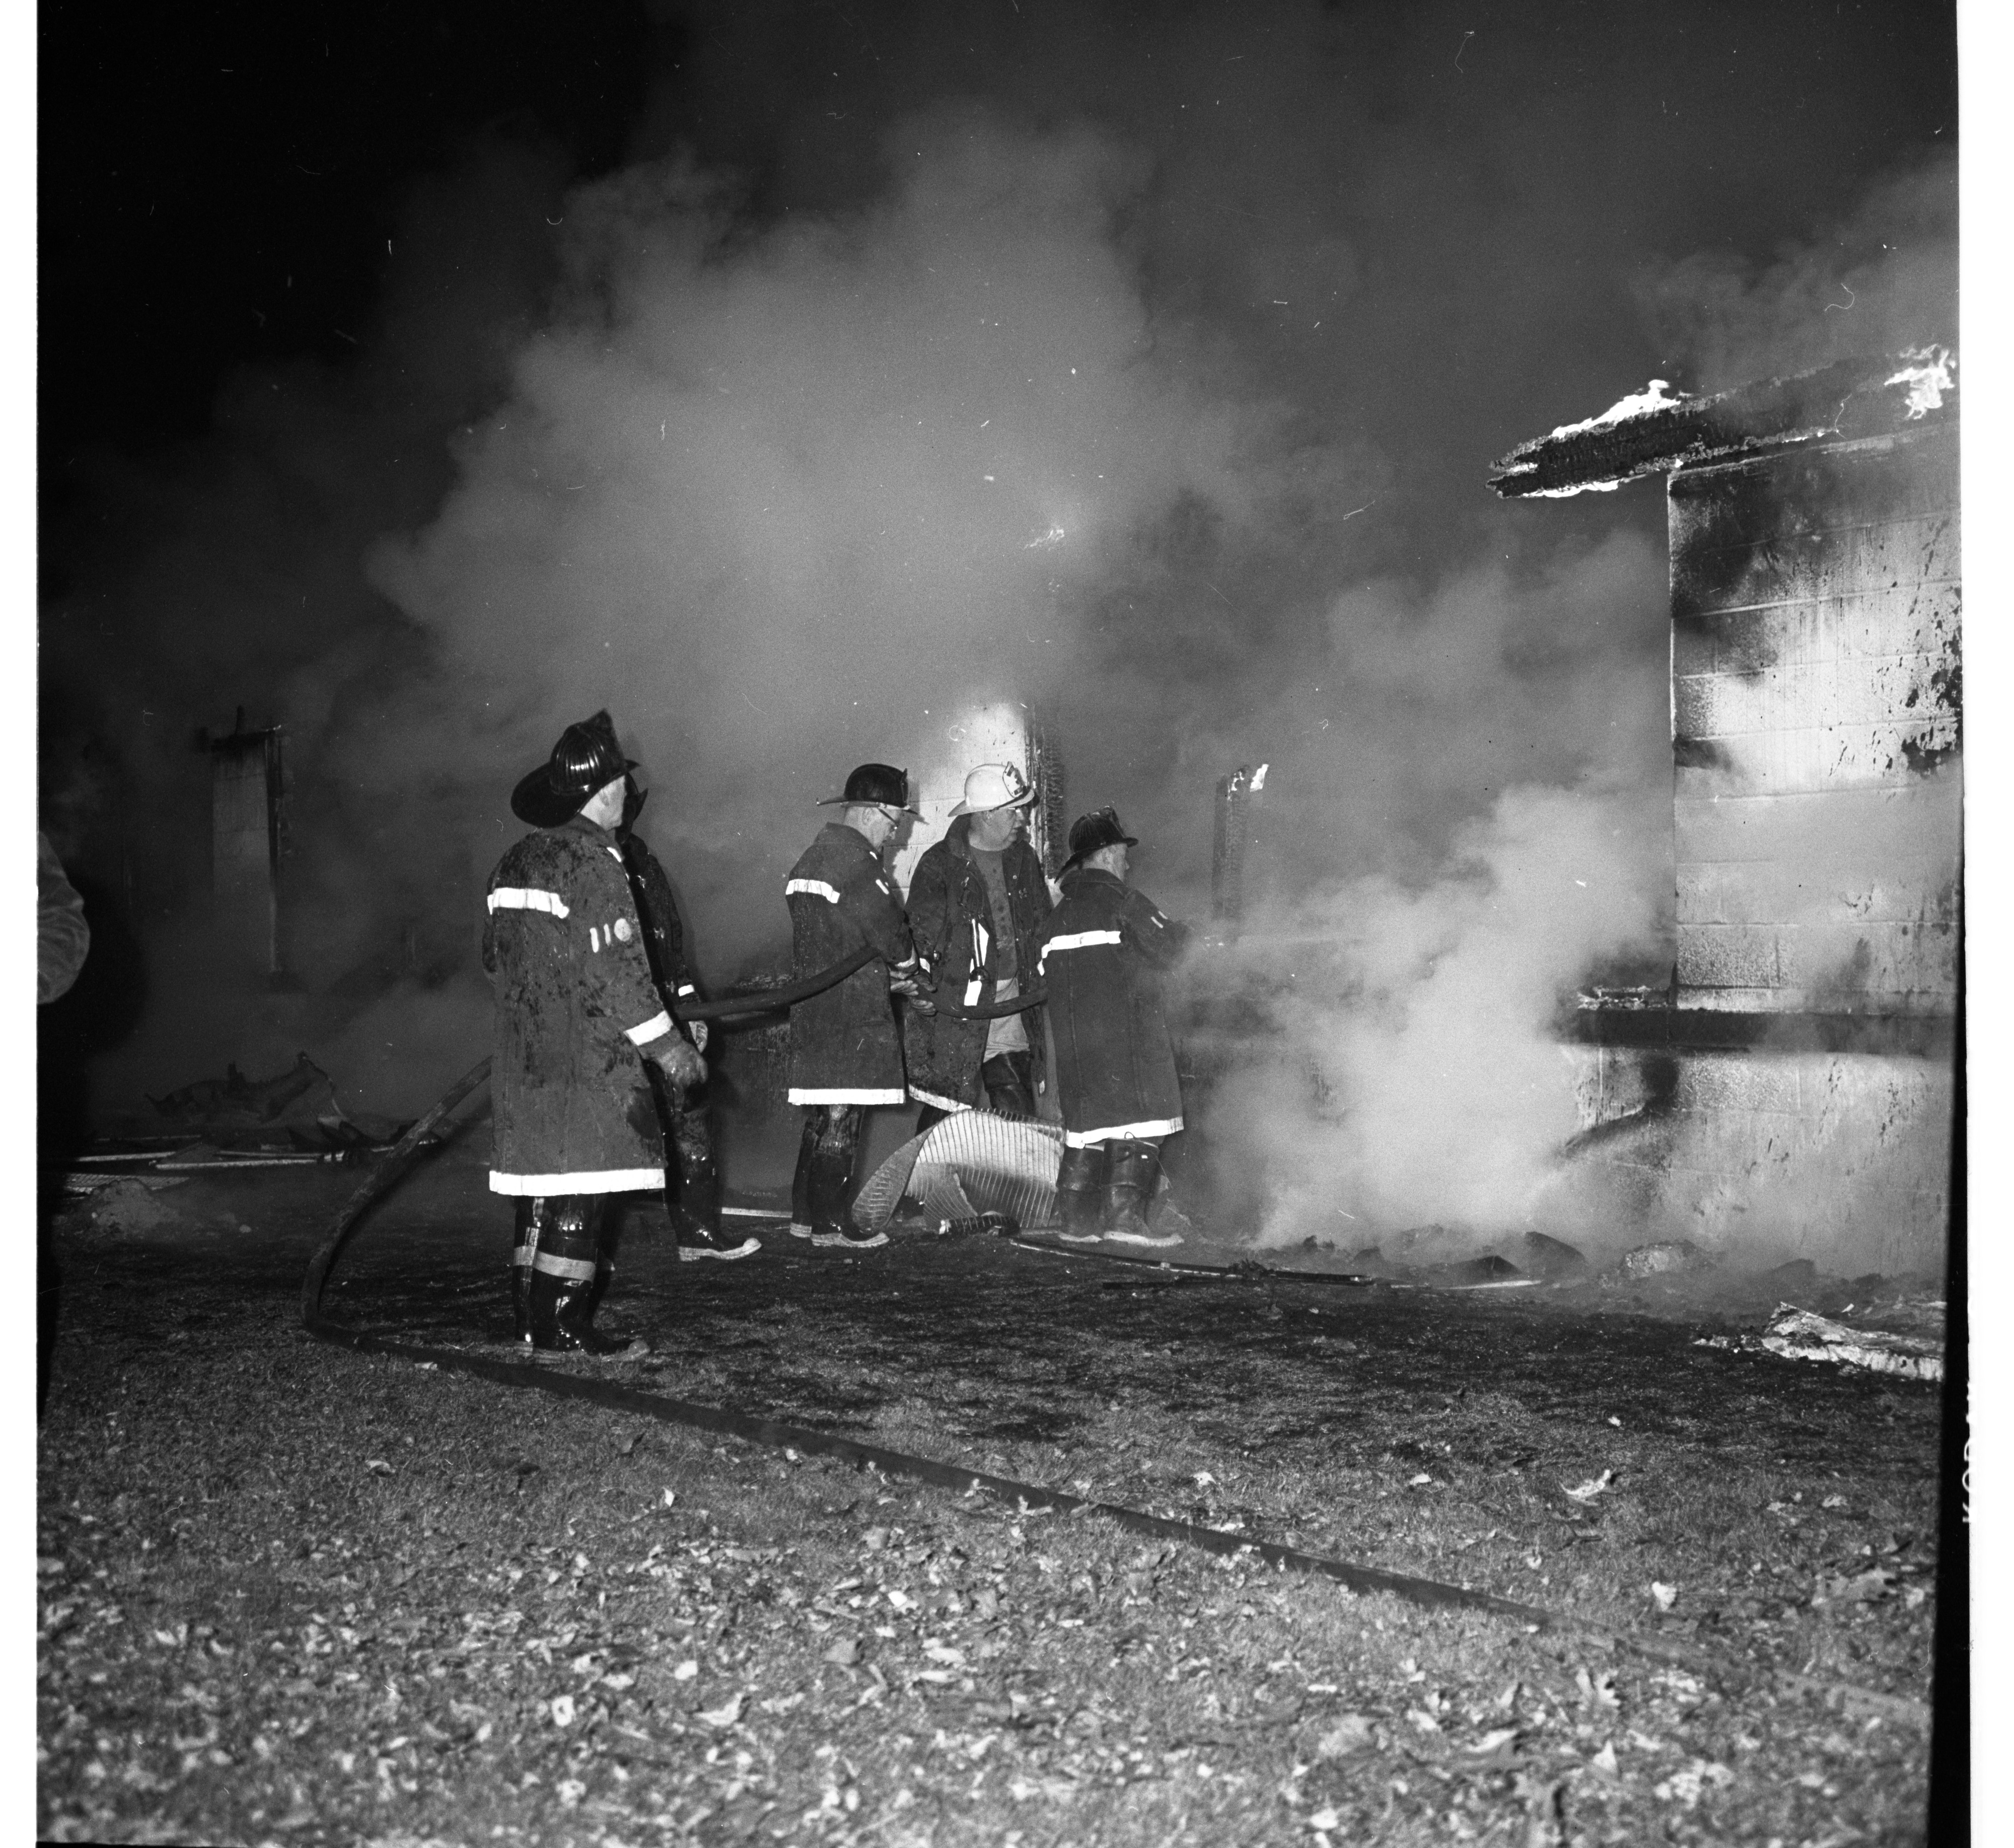 Applied Dynamics International  Plant In Scio Twp. Destroyed In Fire, November 1968 image